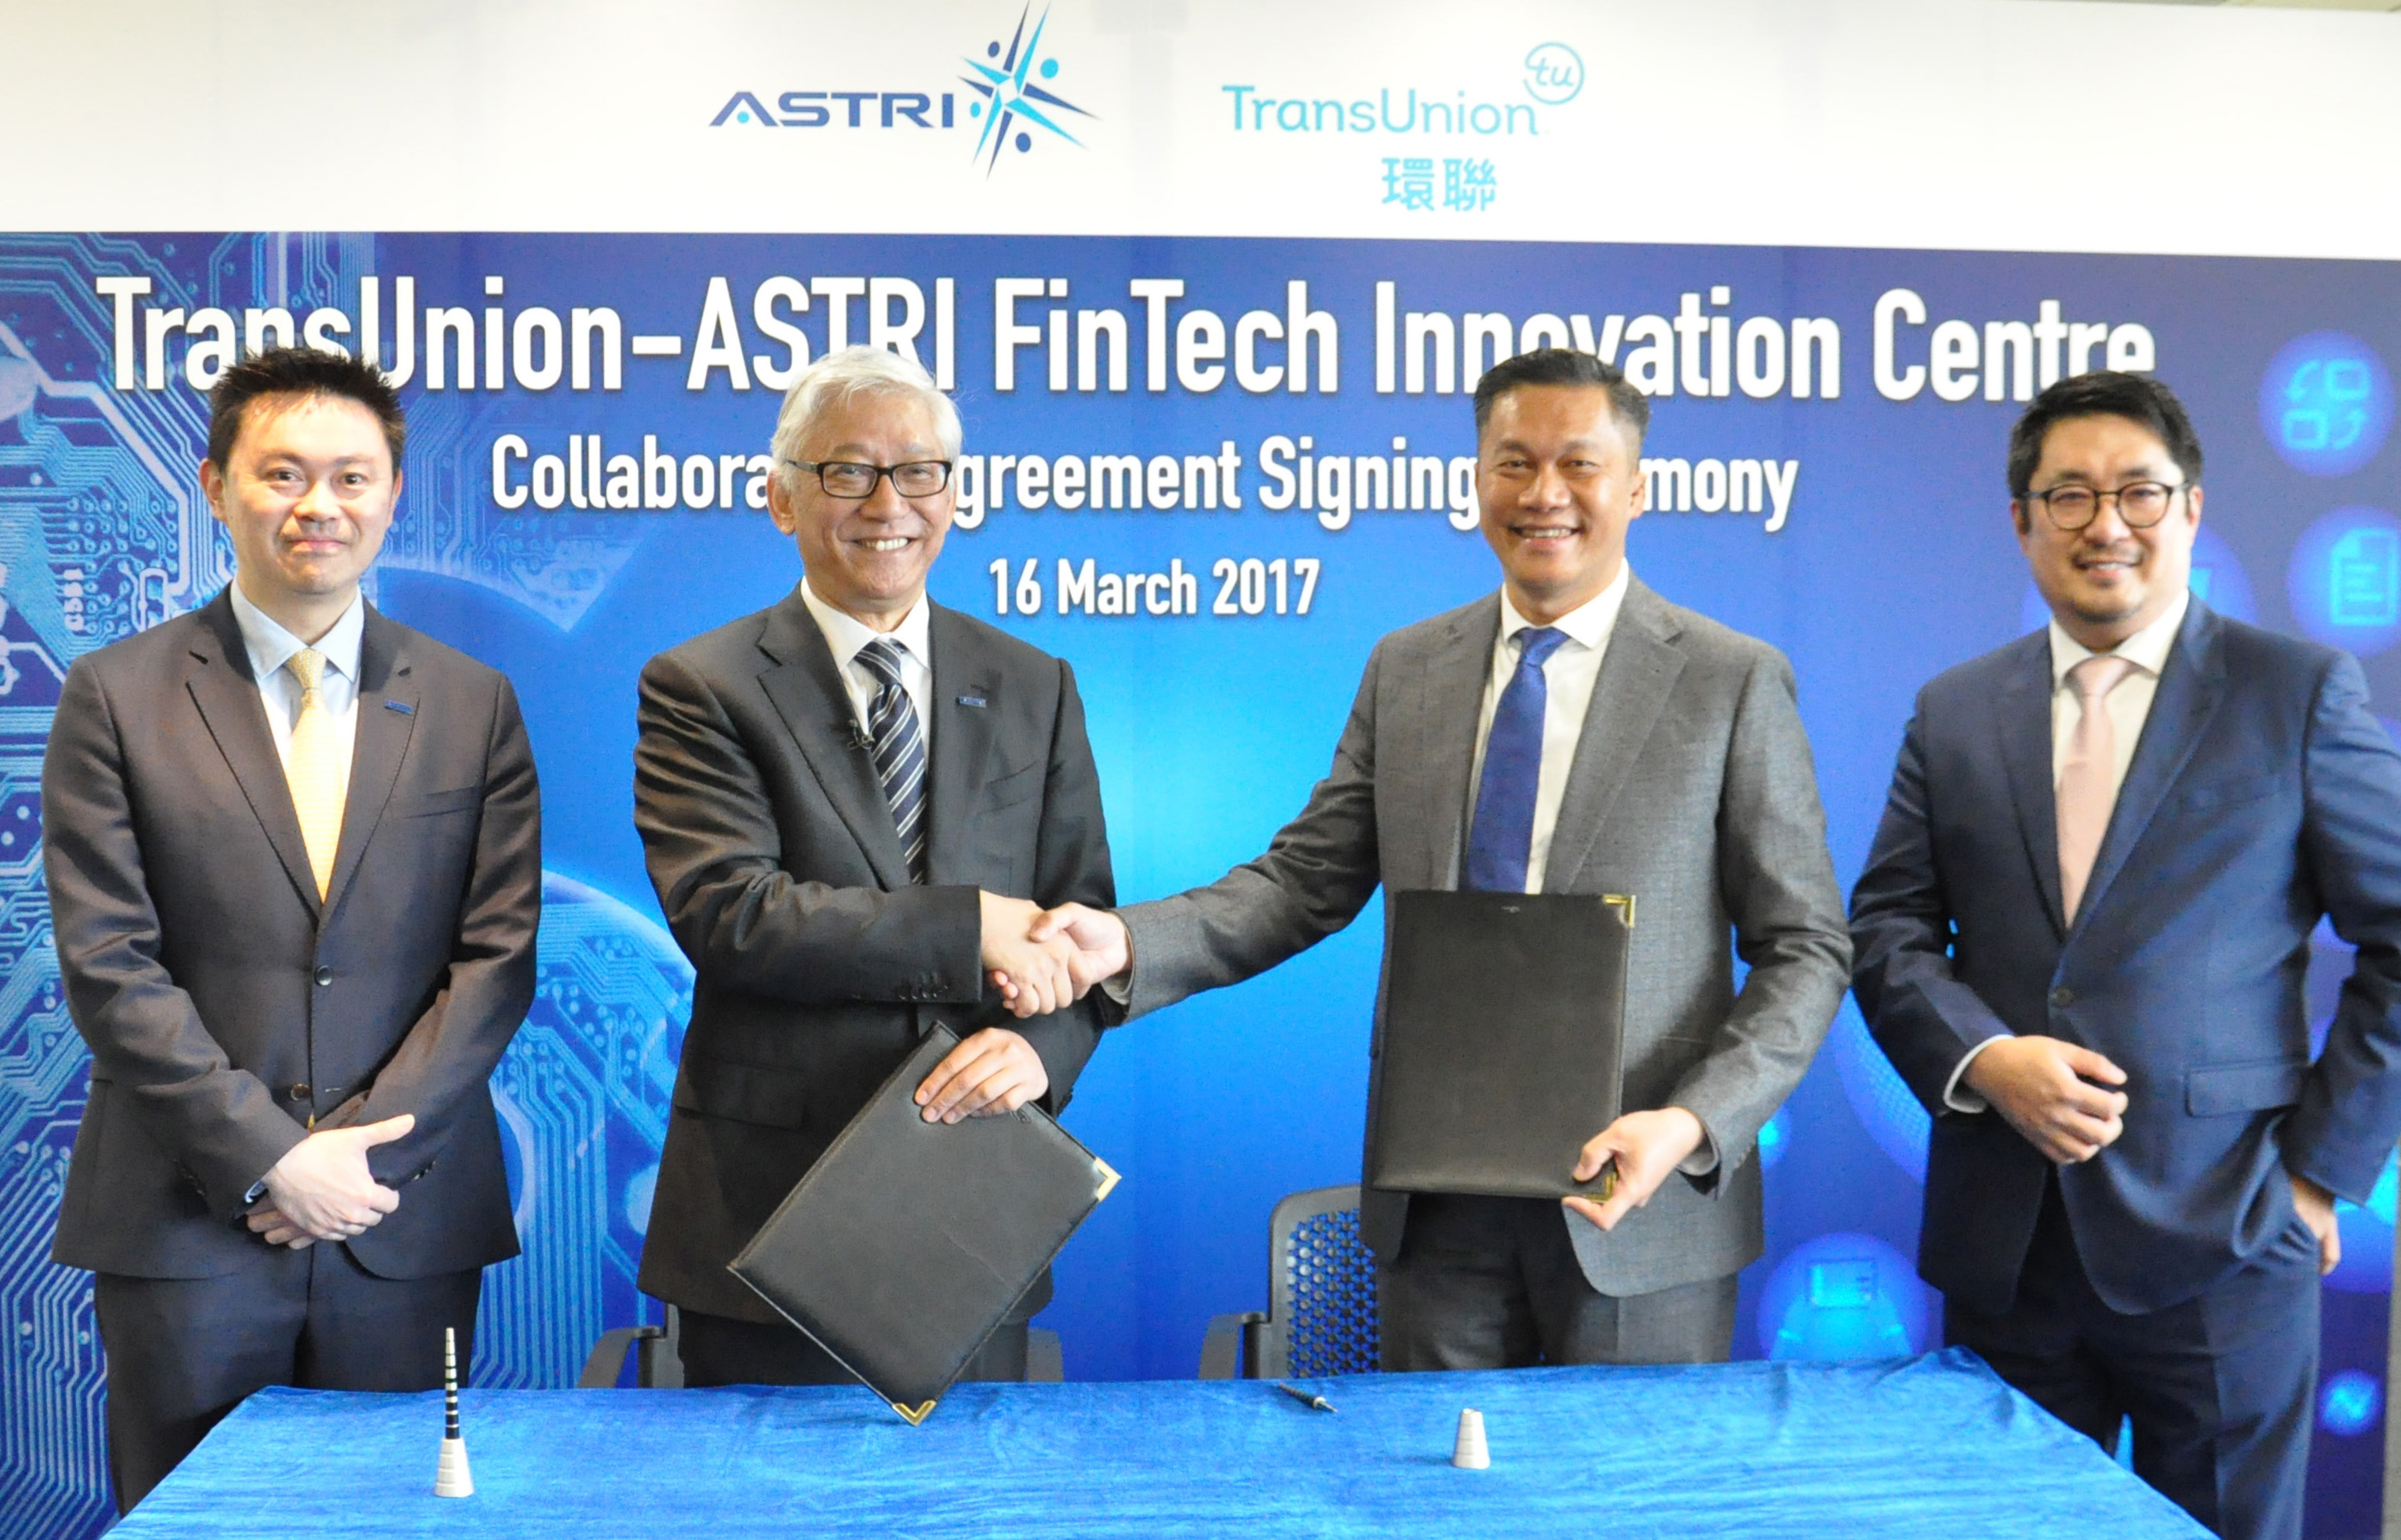 Hong Kong Welcomes 1st Digital Identity Solutions Partnership, TransUnion joins hands with ASTRI to ease banks' compliance requirements